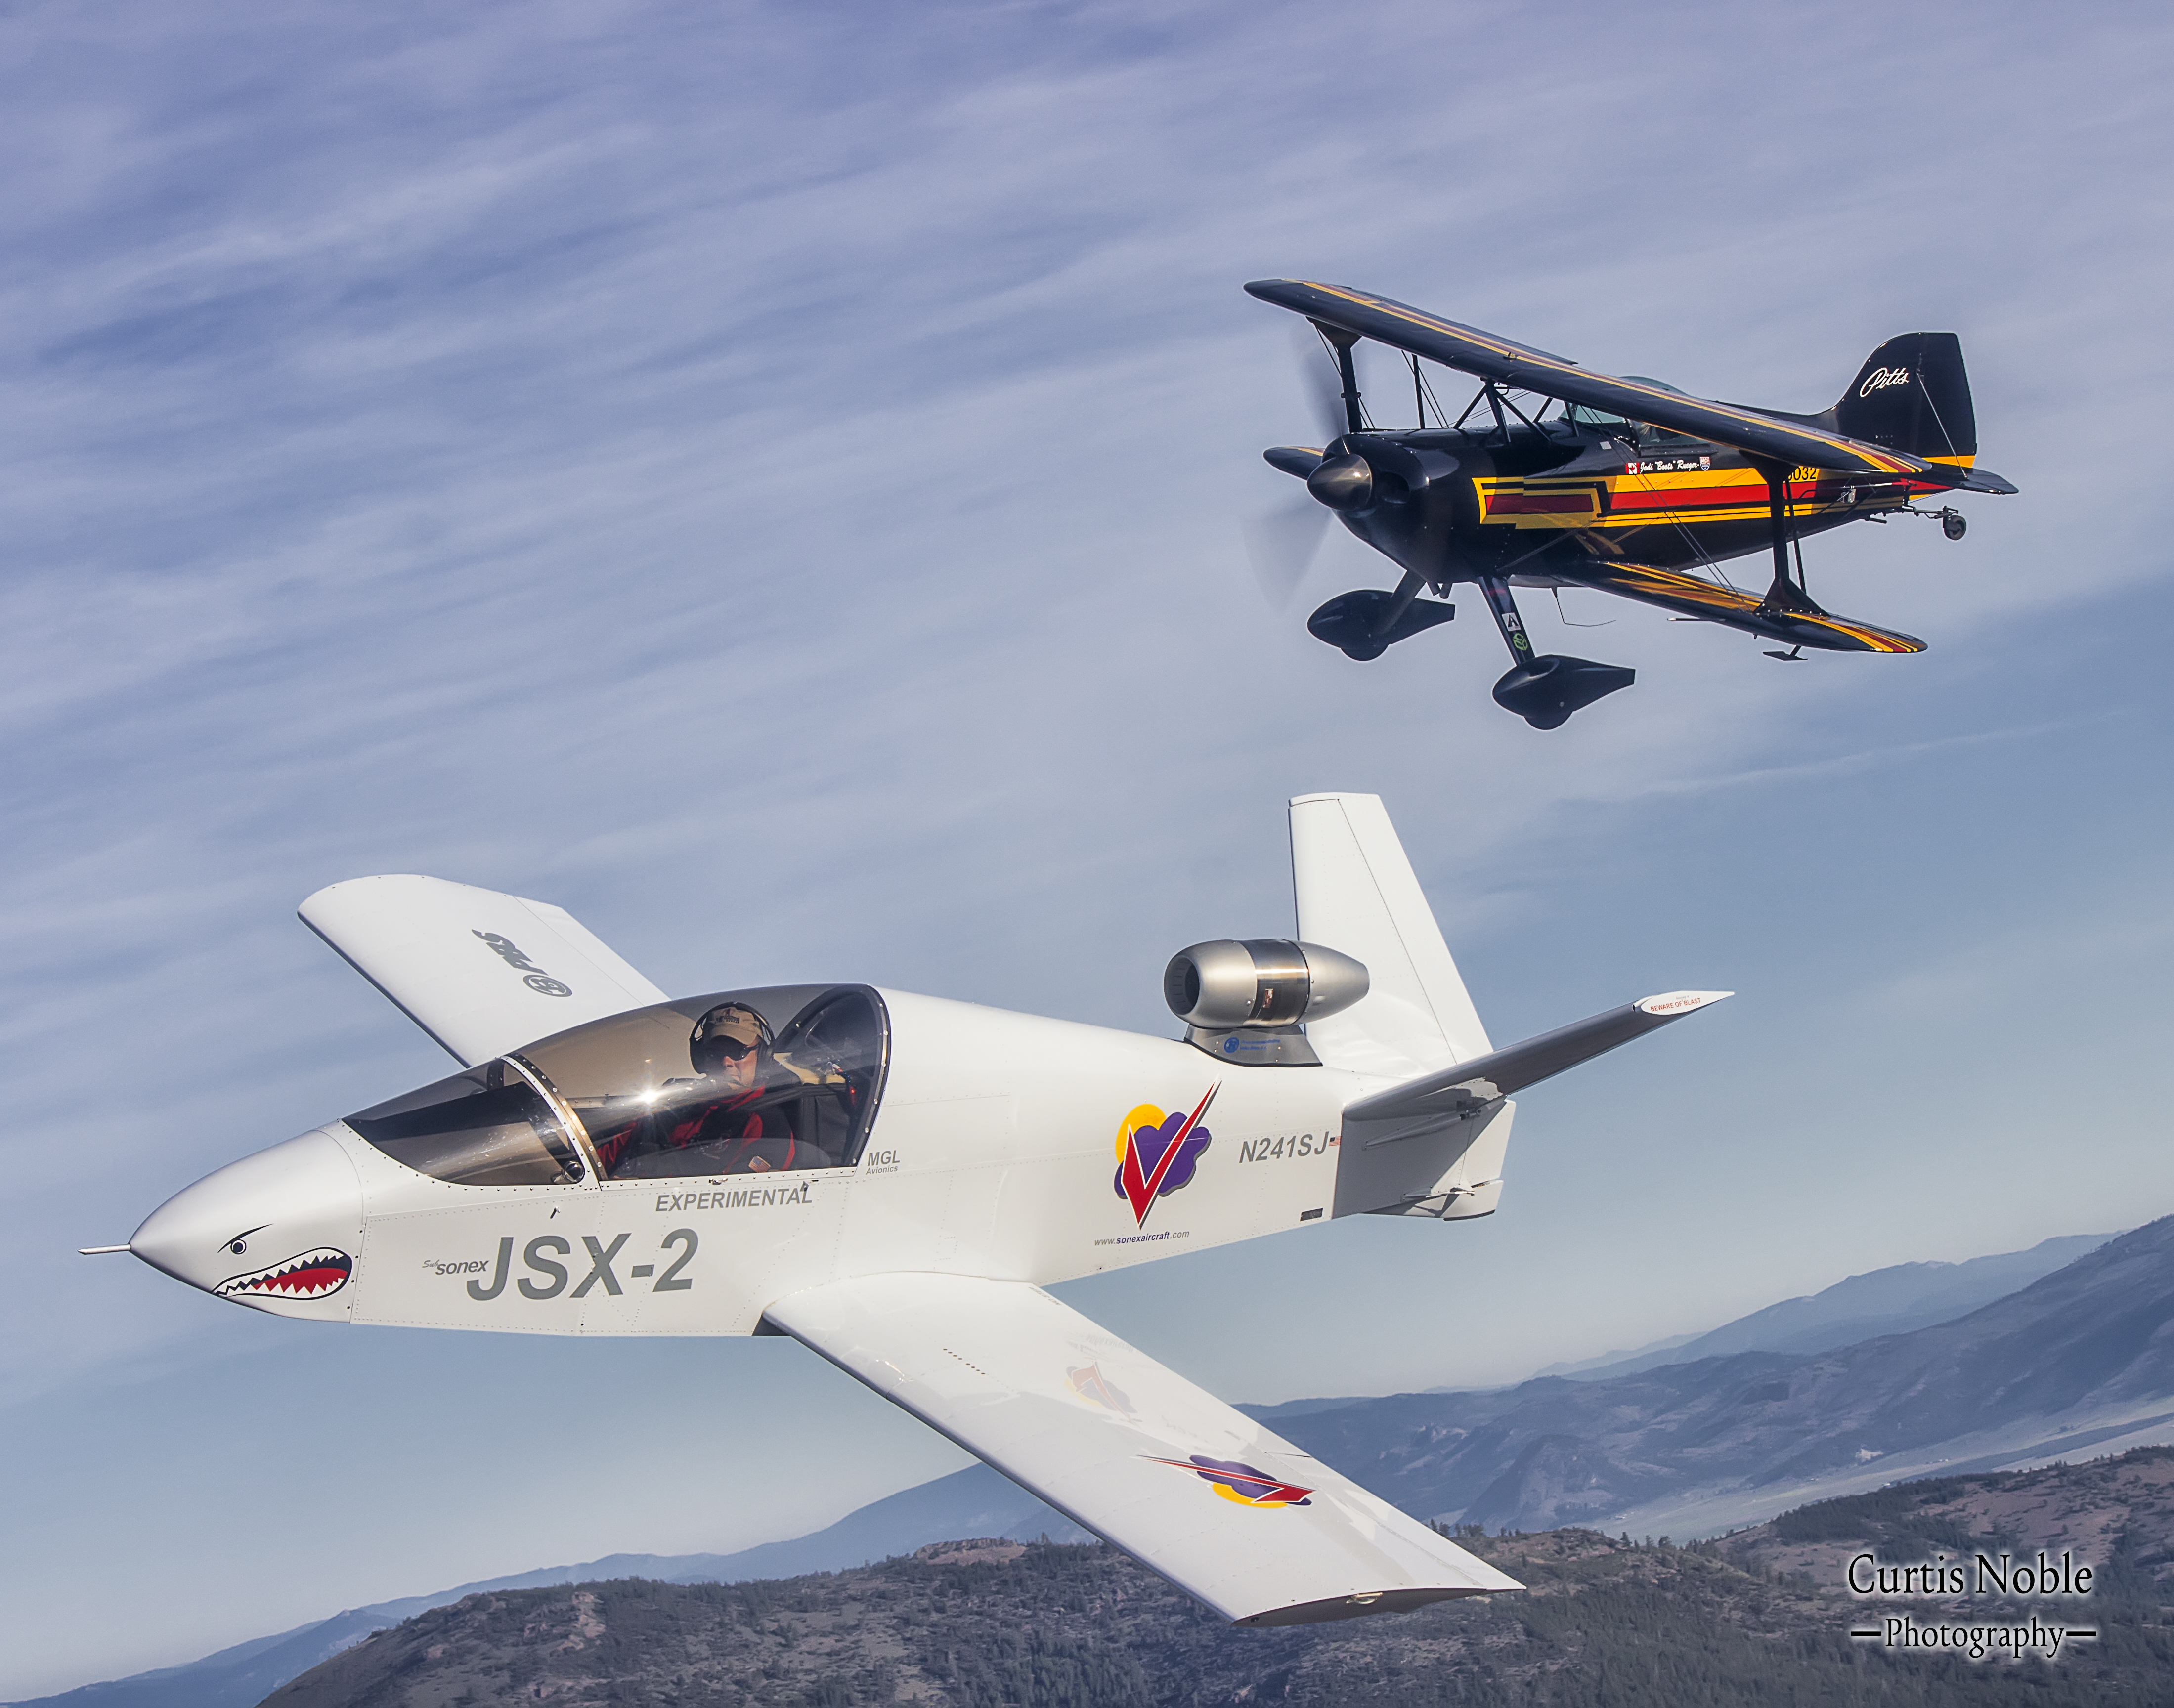 SubSonex Personal Jet Approved for Reno Air Races – Sonex Aircraft